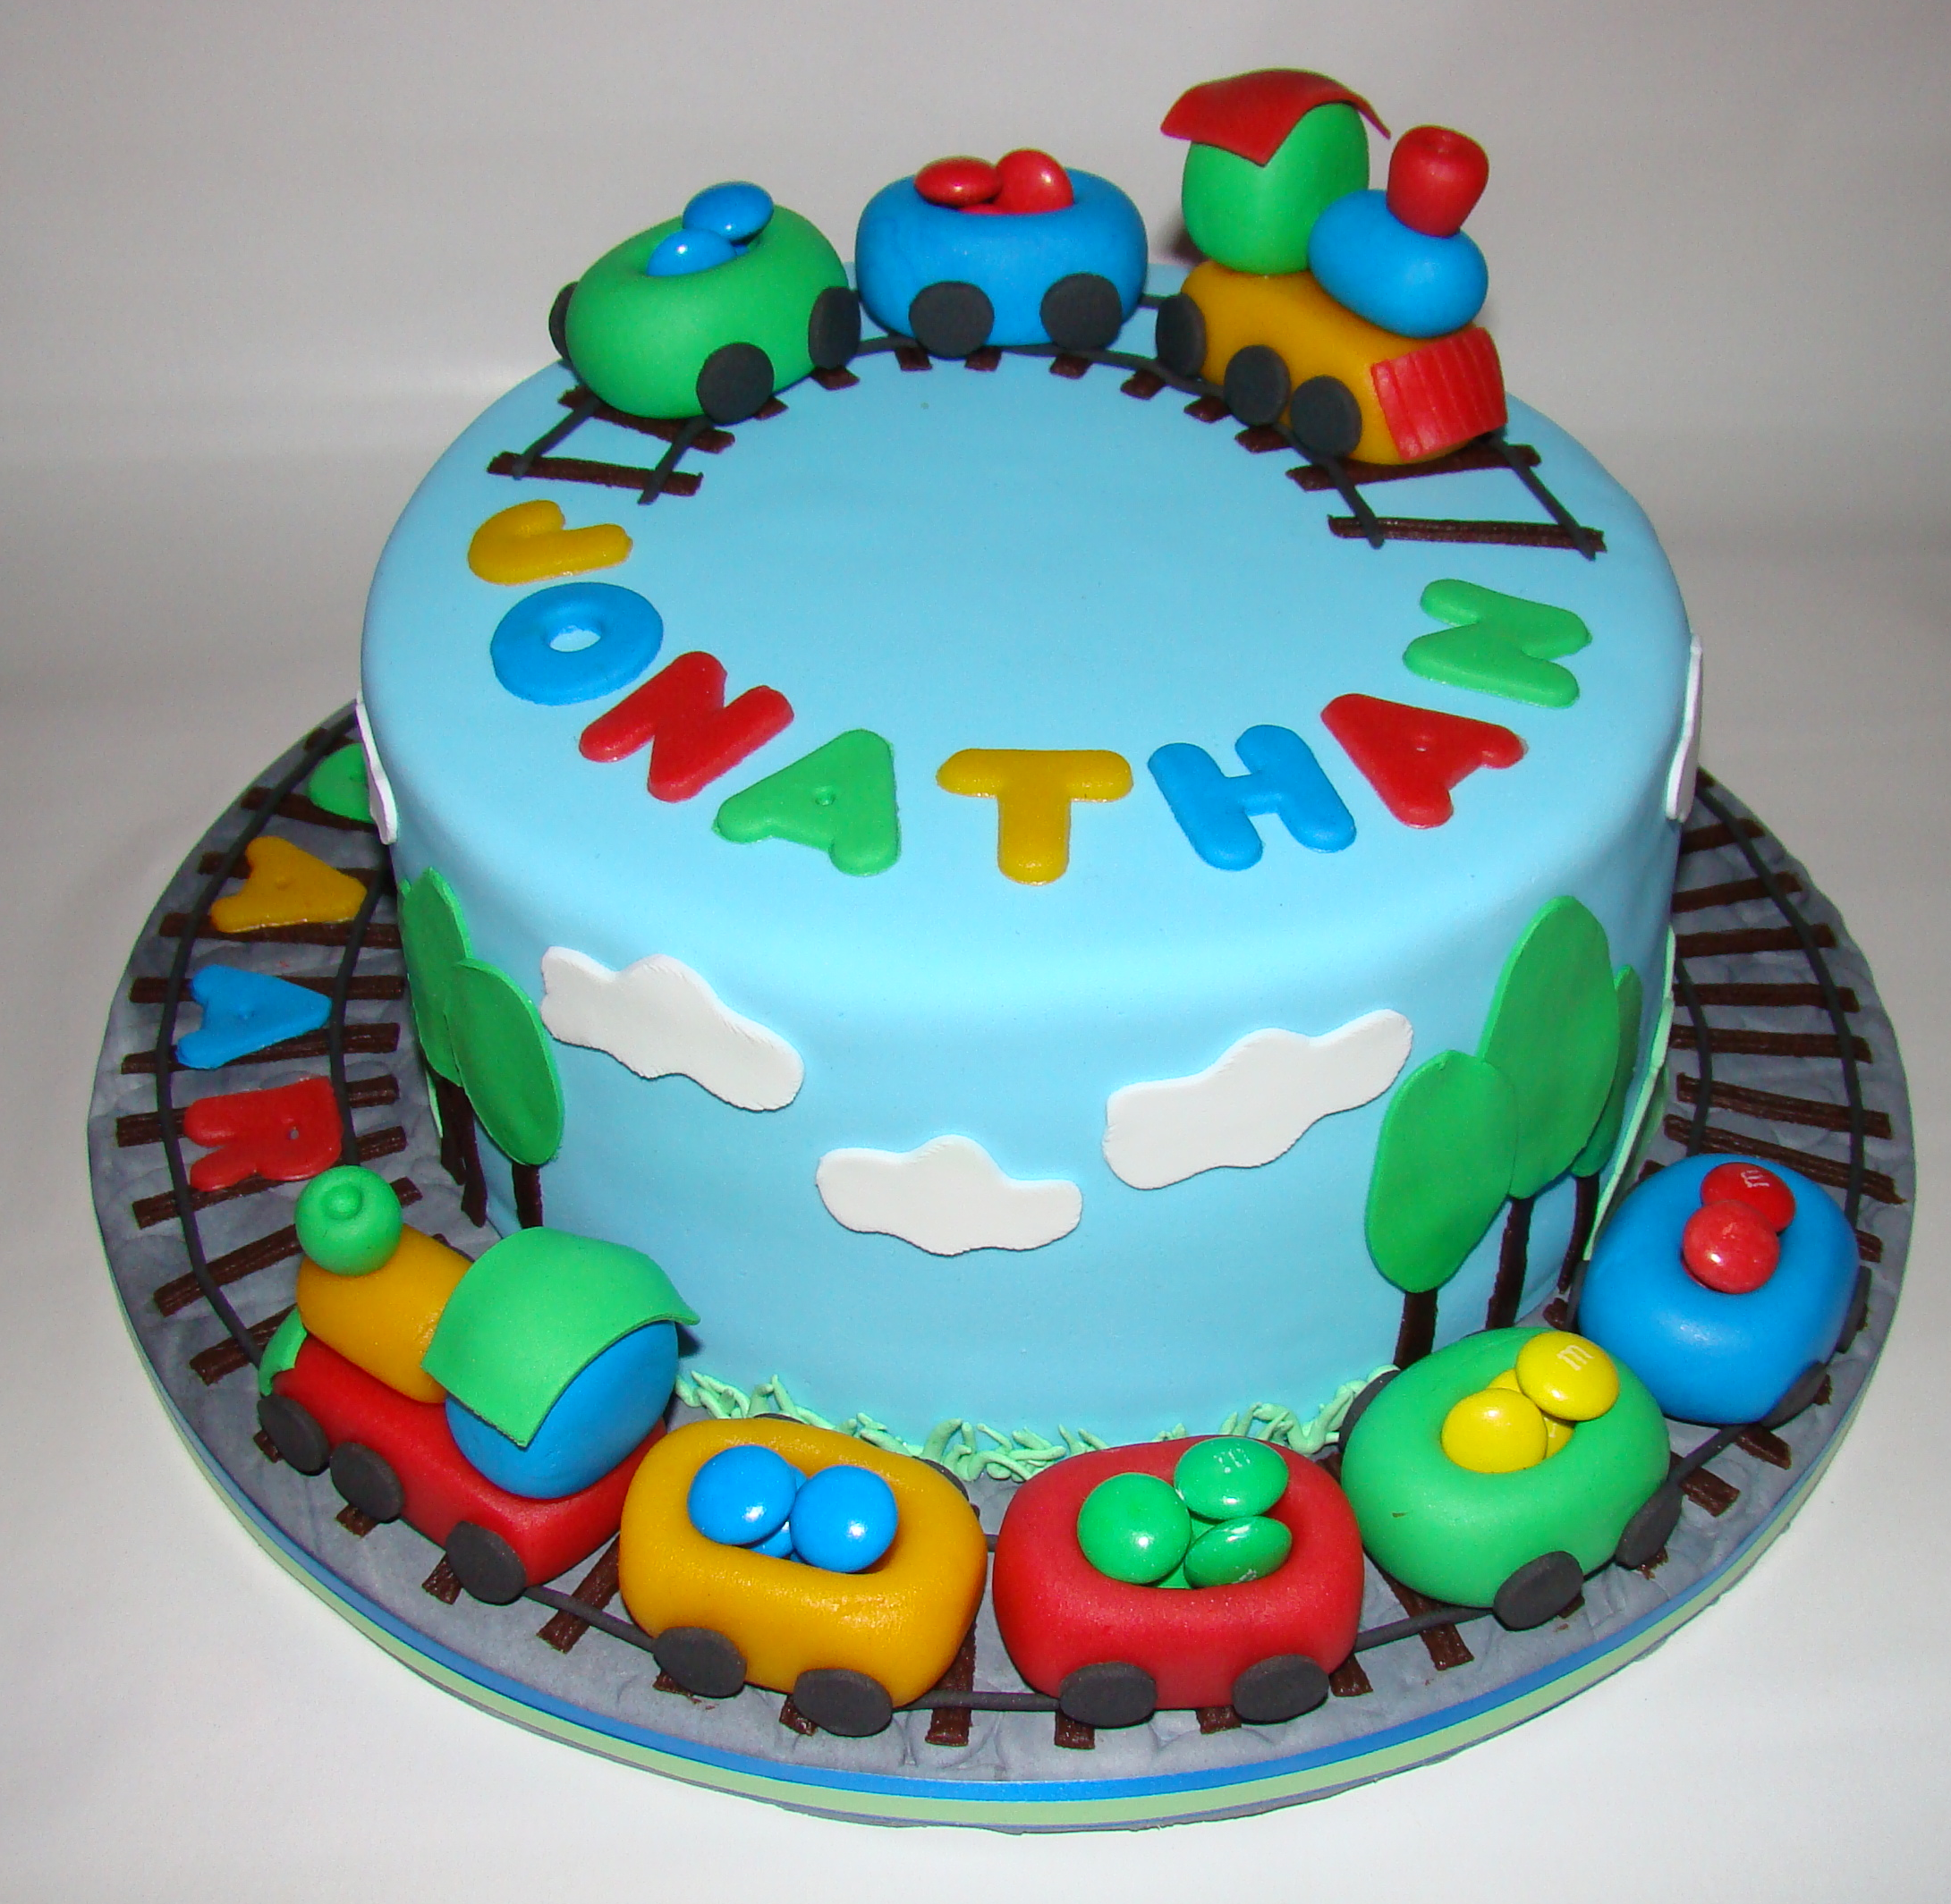 Traincake For A Two Years Old Boy